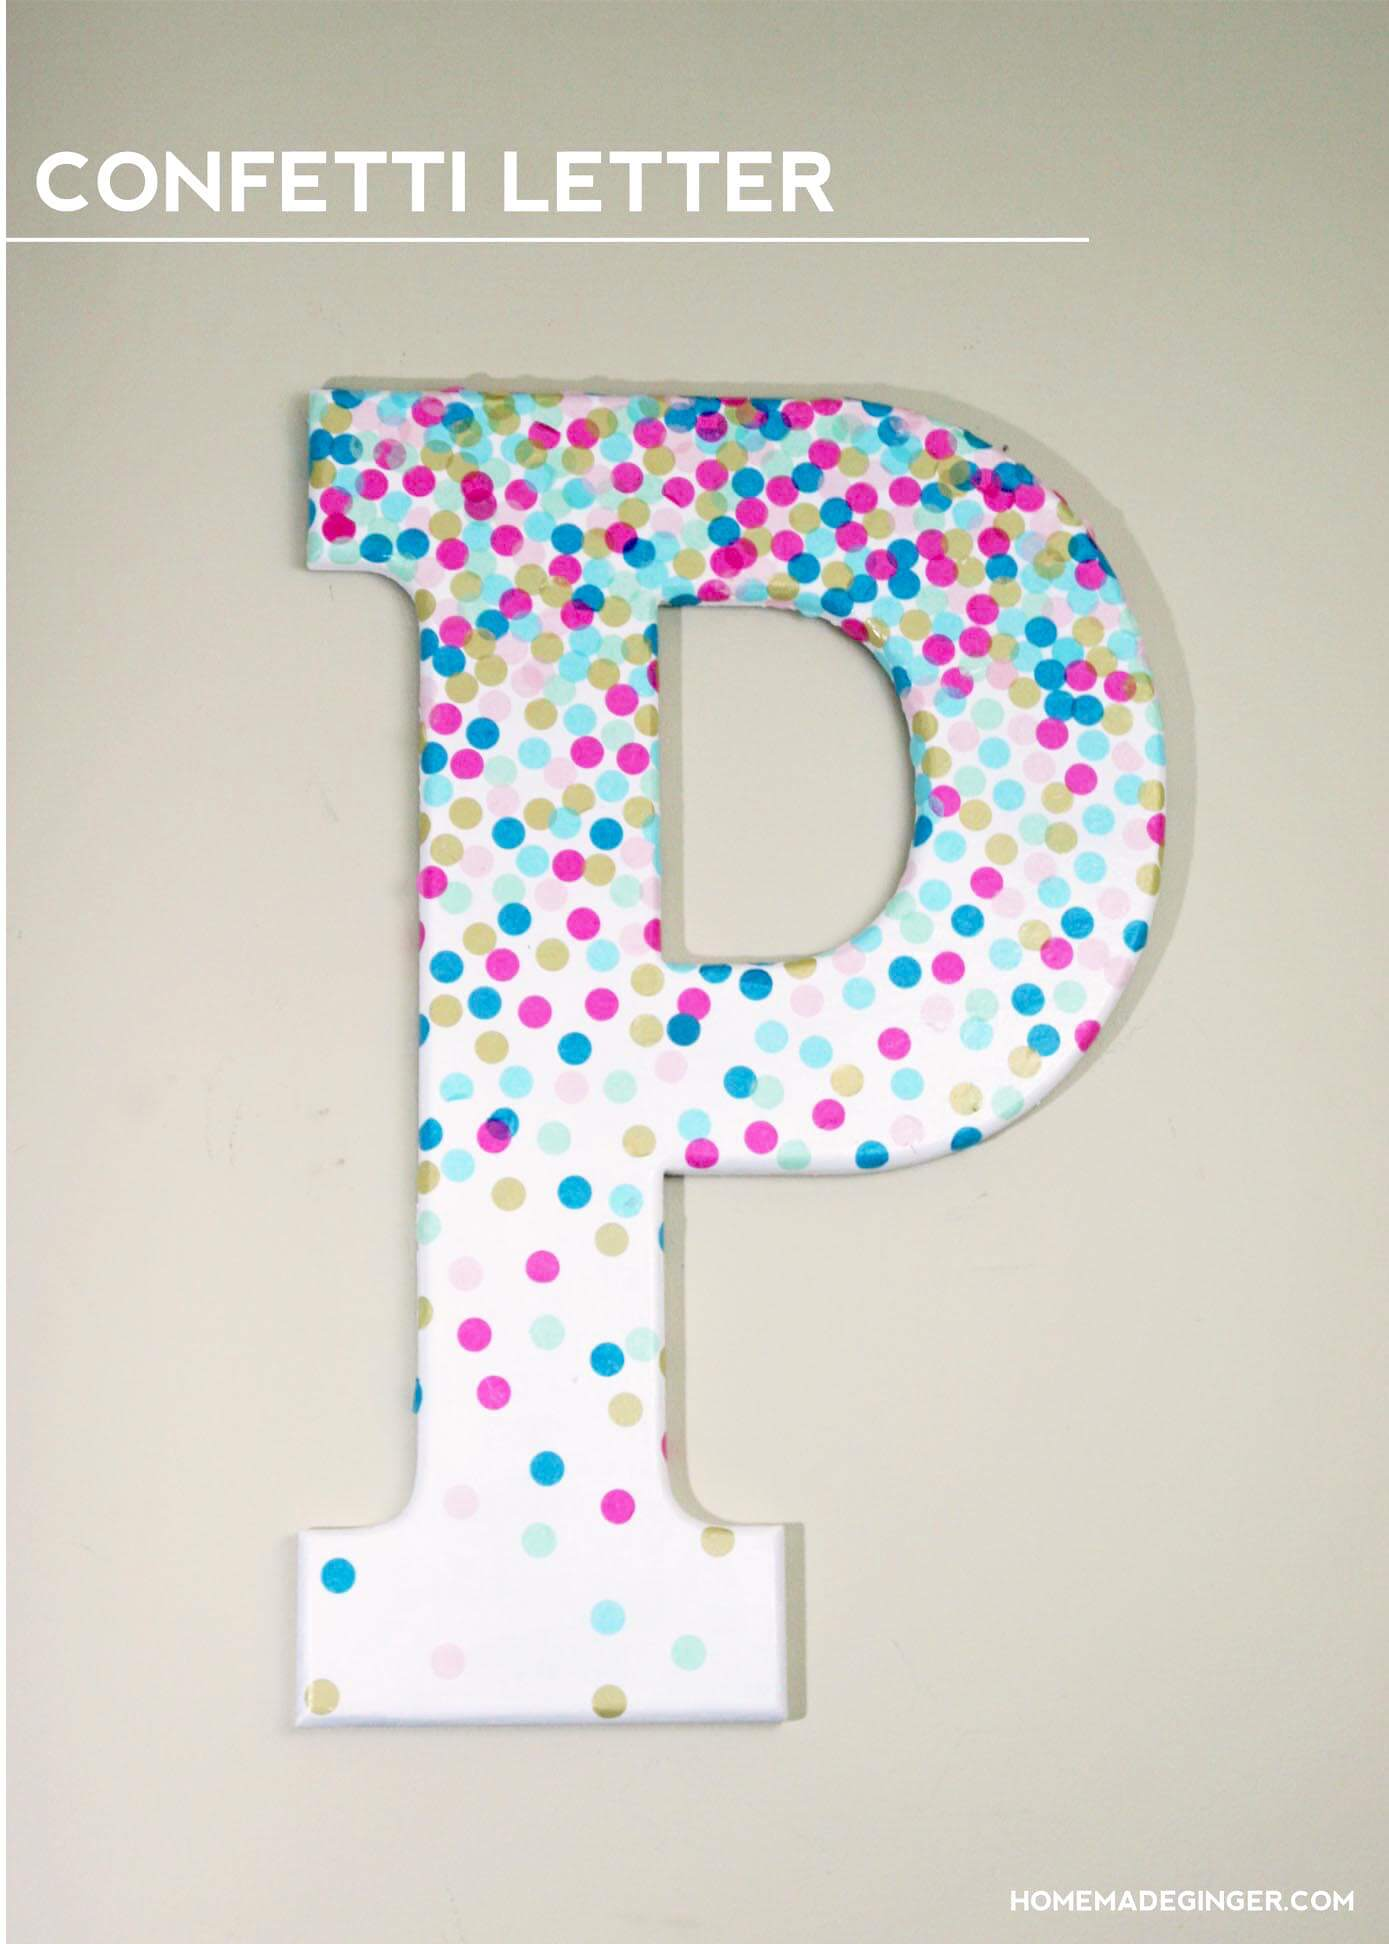 Confetti Letters Make a Playful Impact